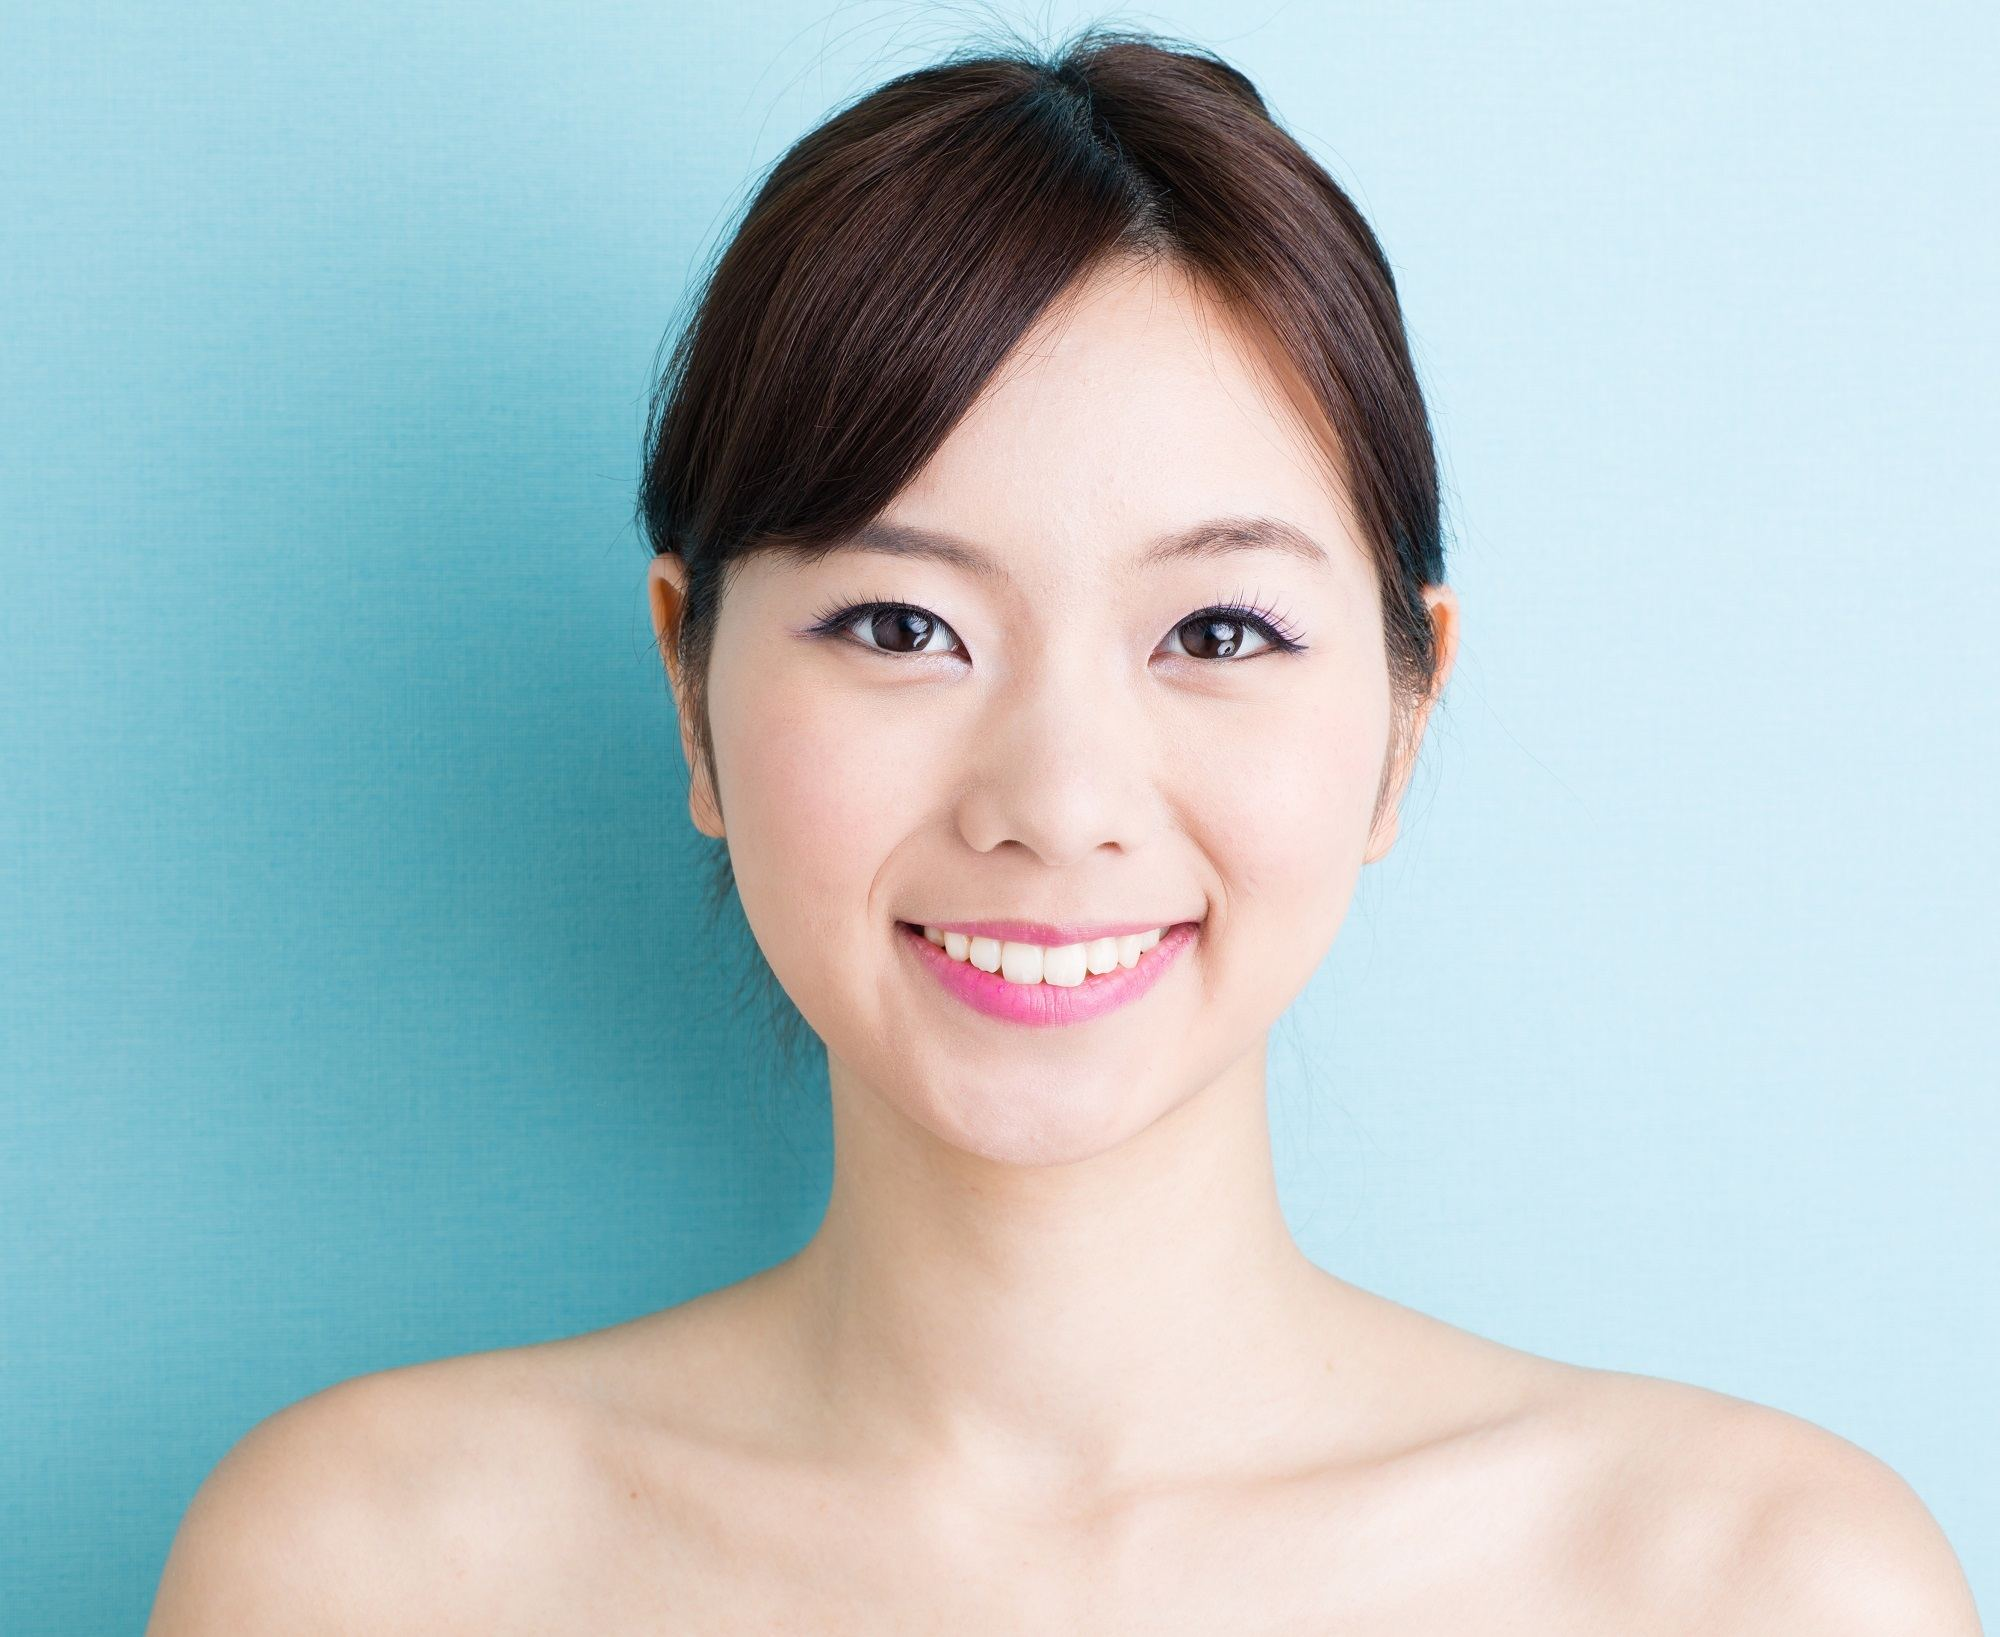 Long hair with side bangs: Closeup of an Asian woman with black hair in a bun against a blue background